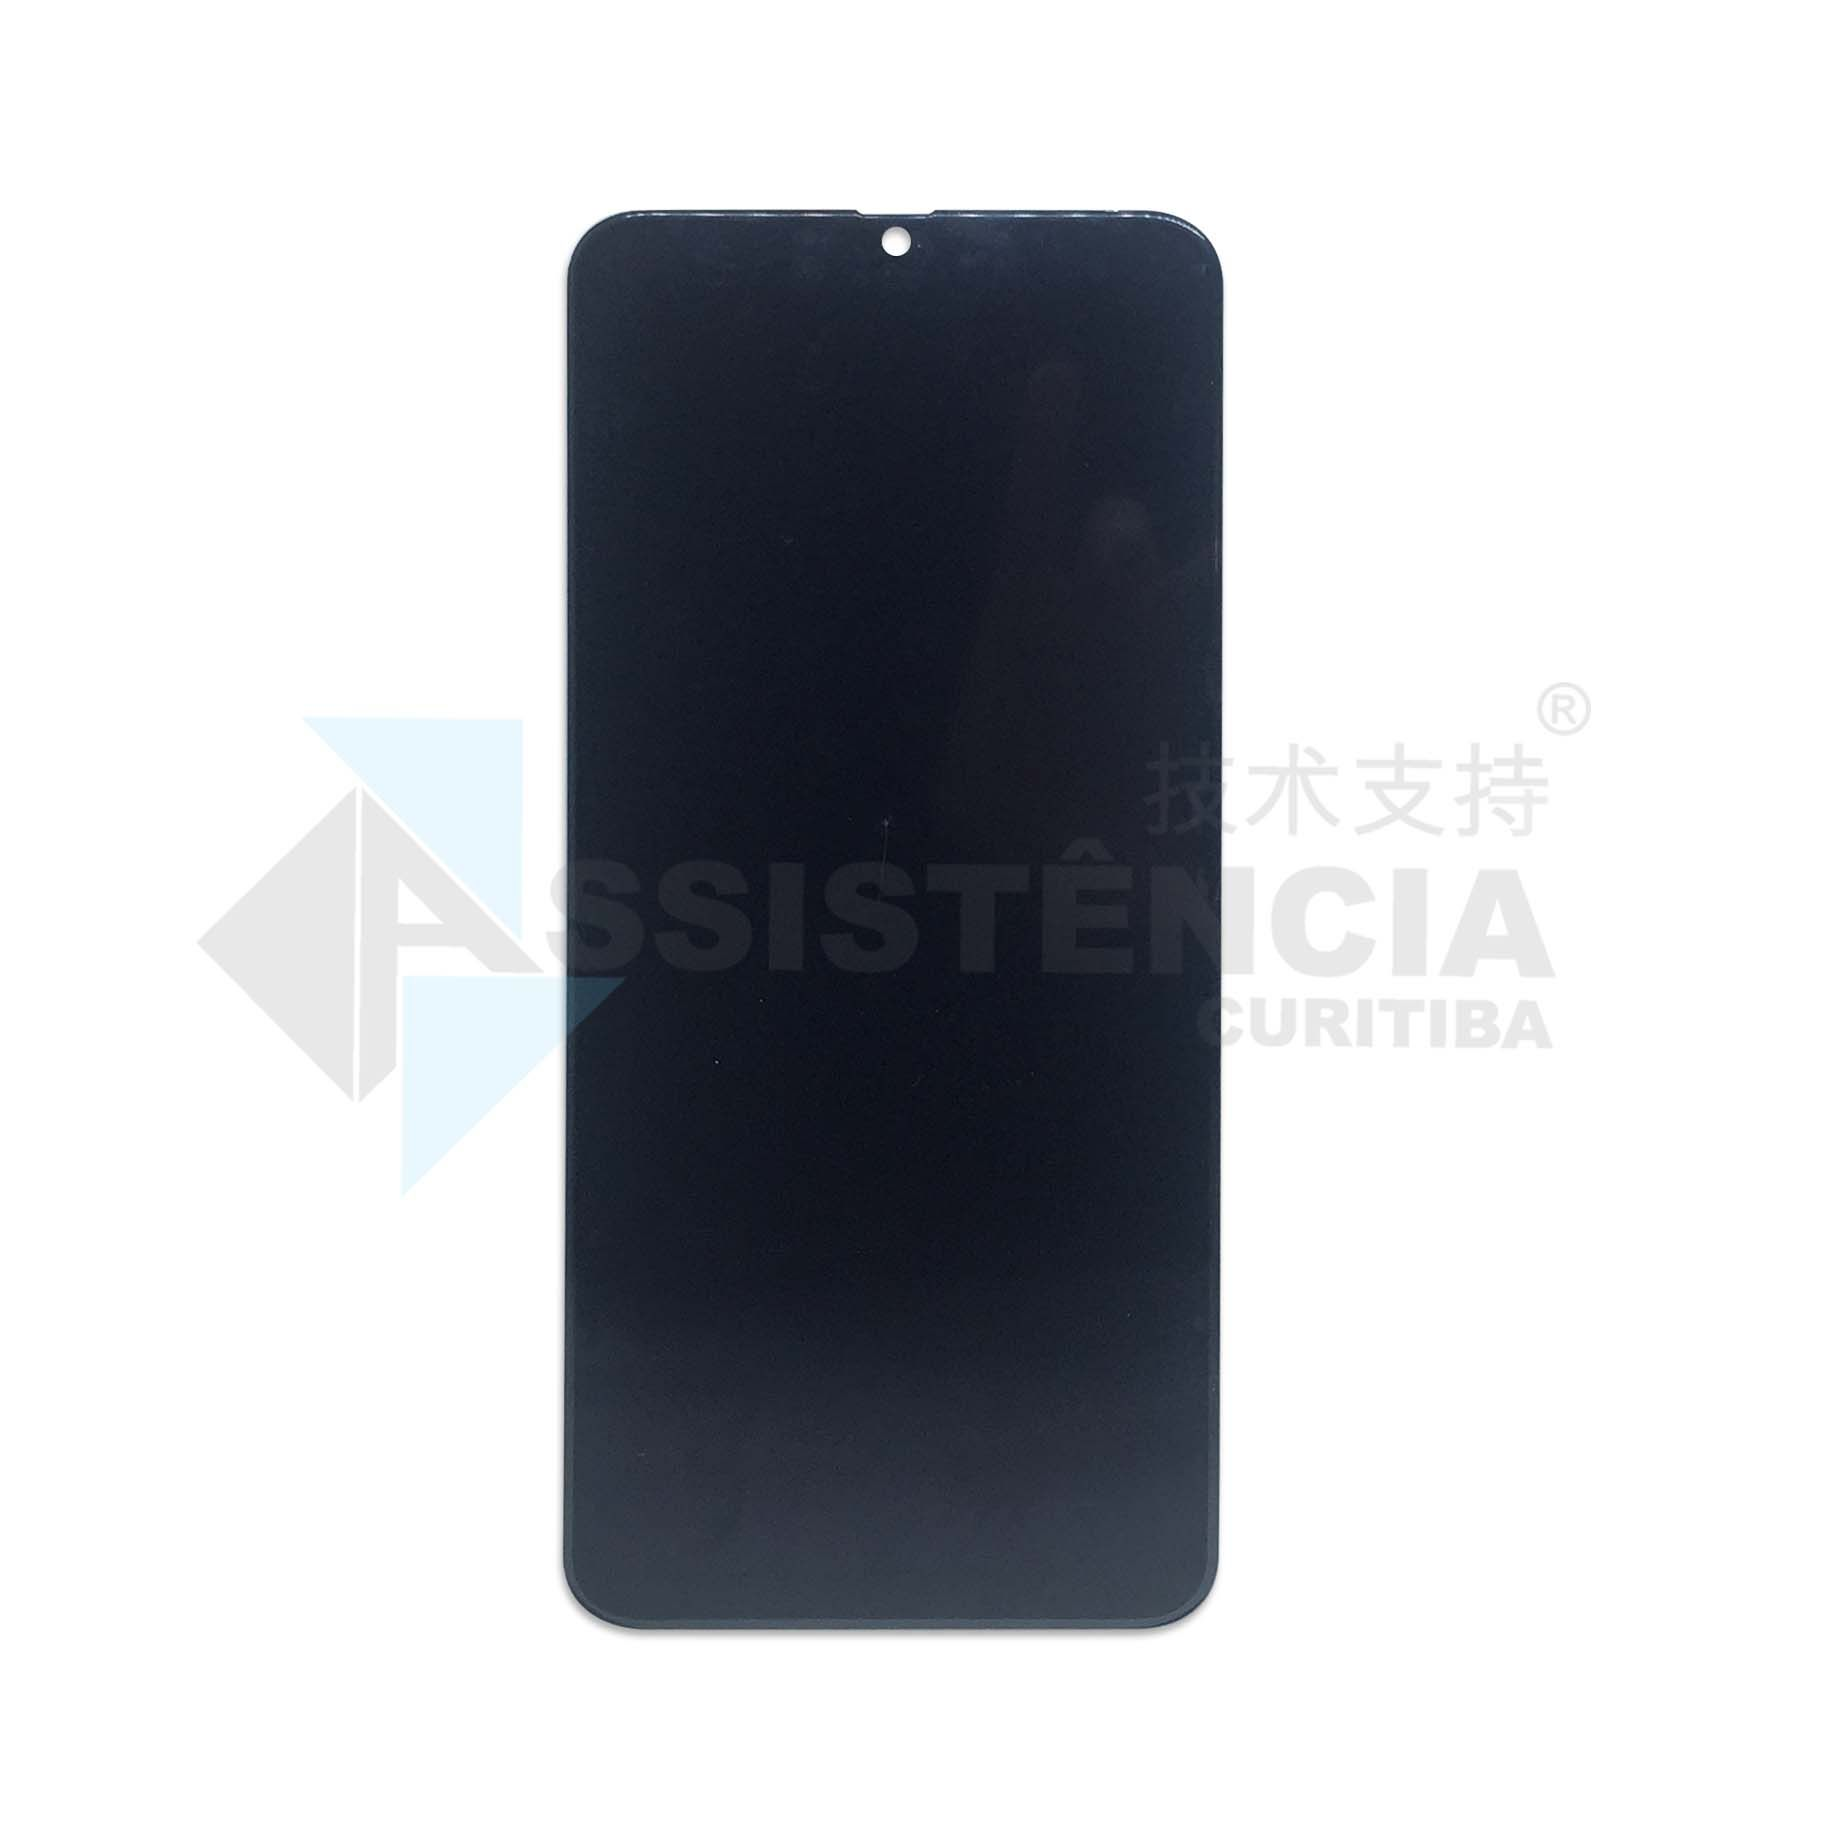 Tela Display Samsung Galaxy A50 A505 Original Ch